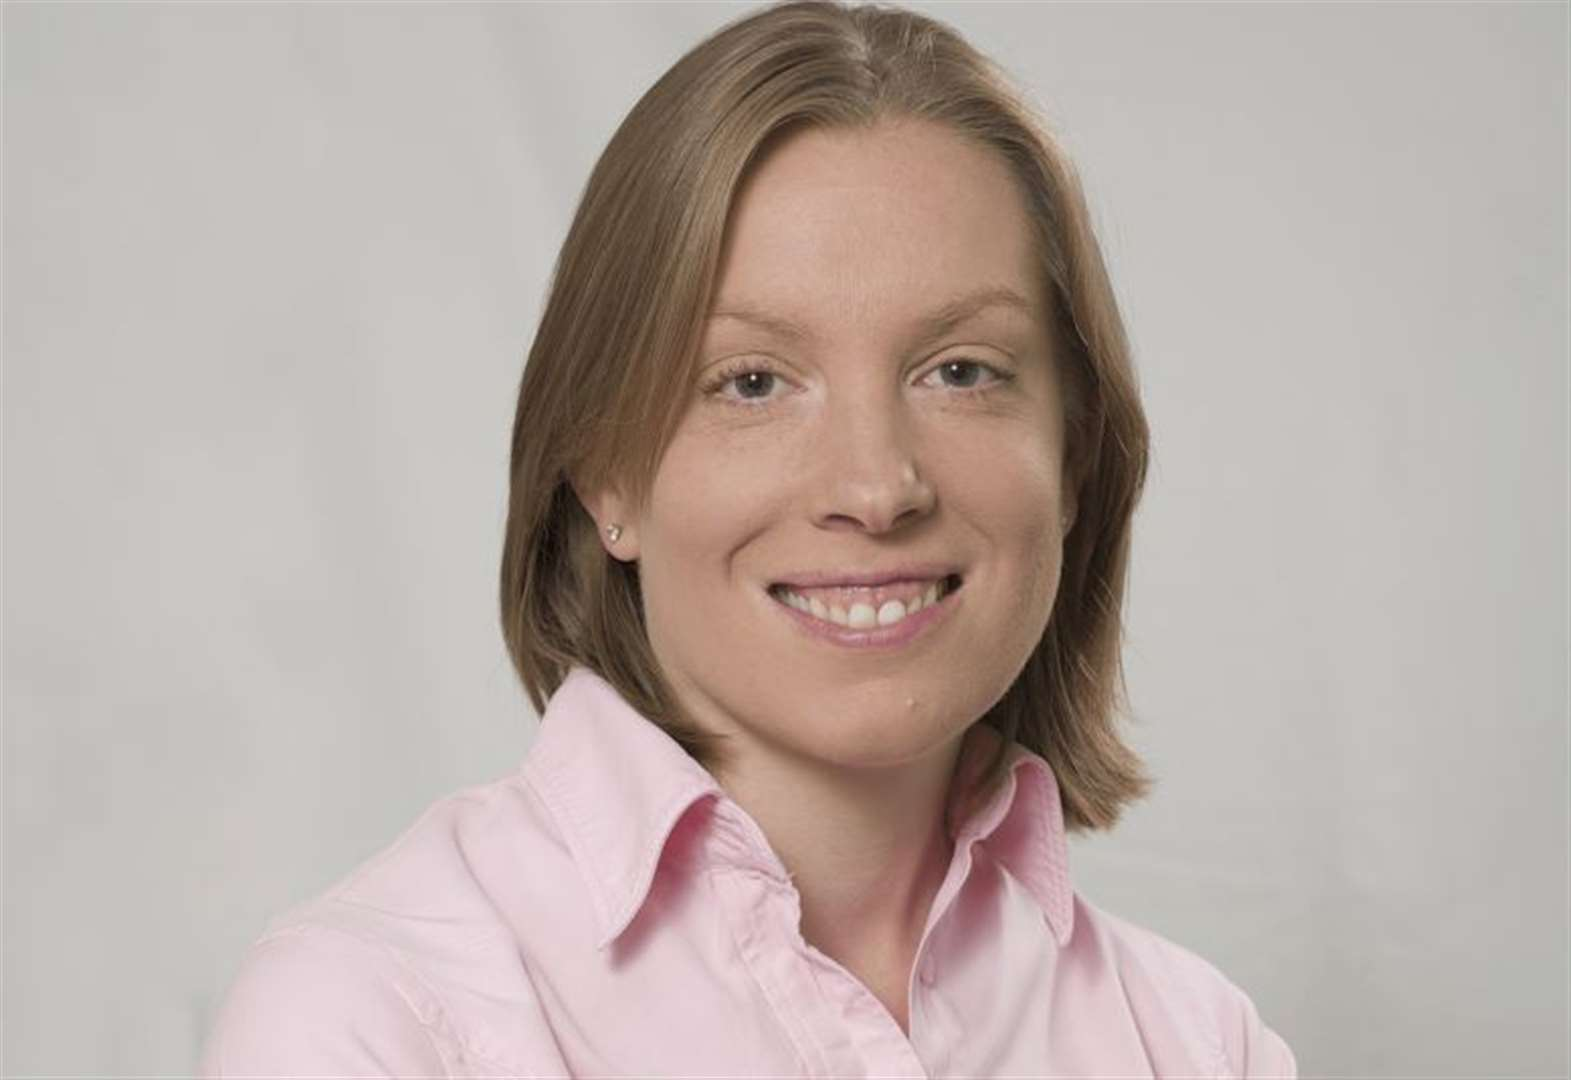 General Election 2019: Tracey Crouch seeks re-election